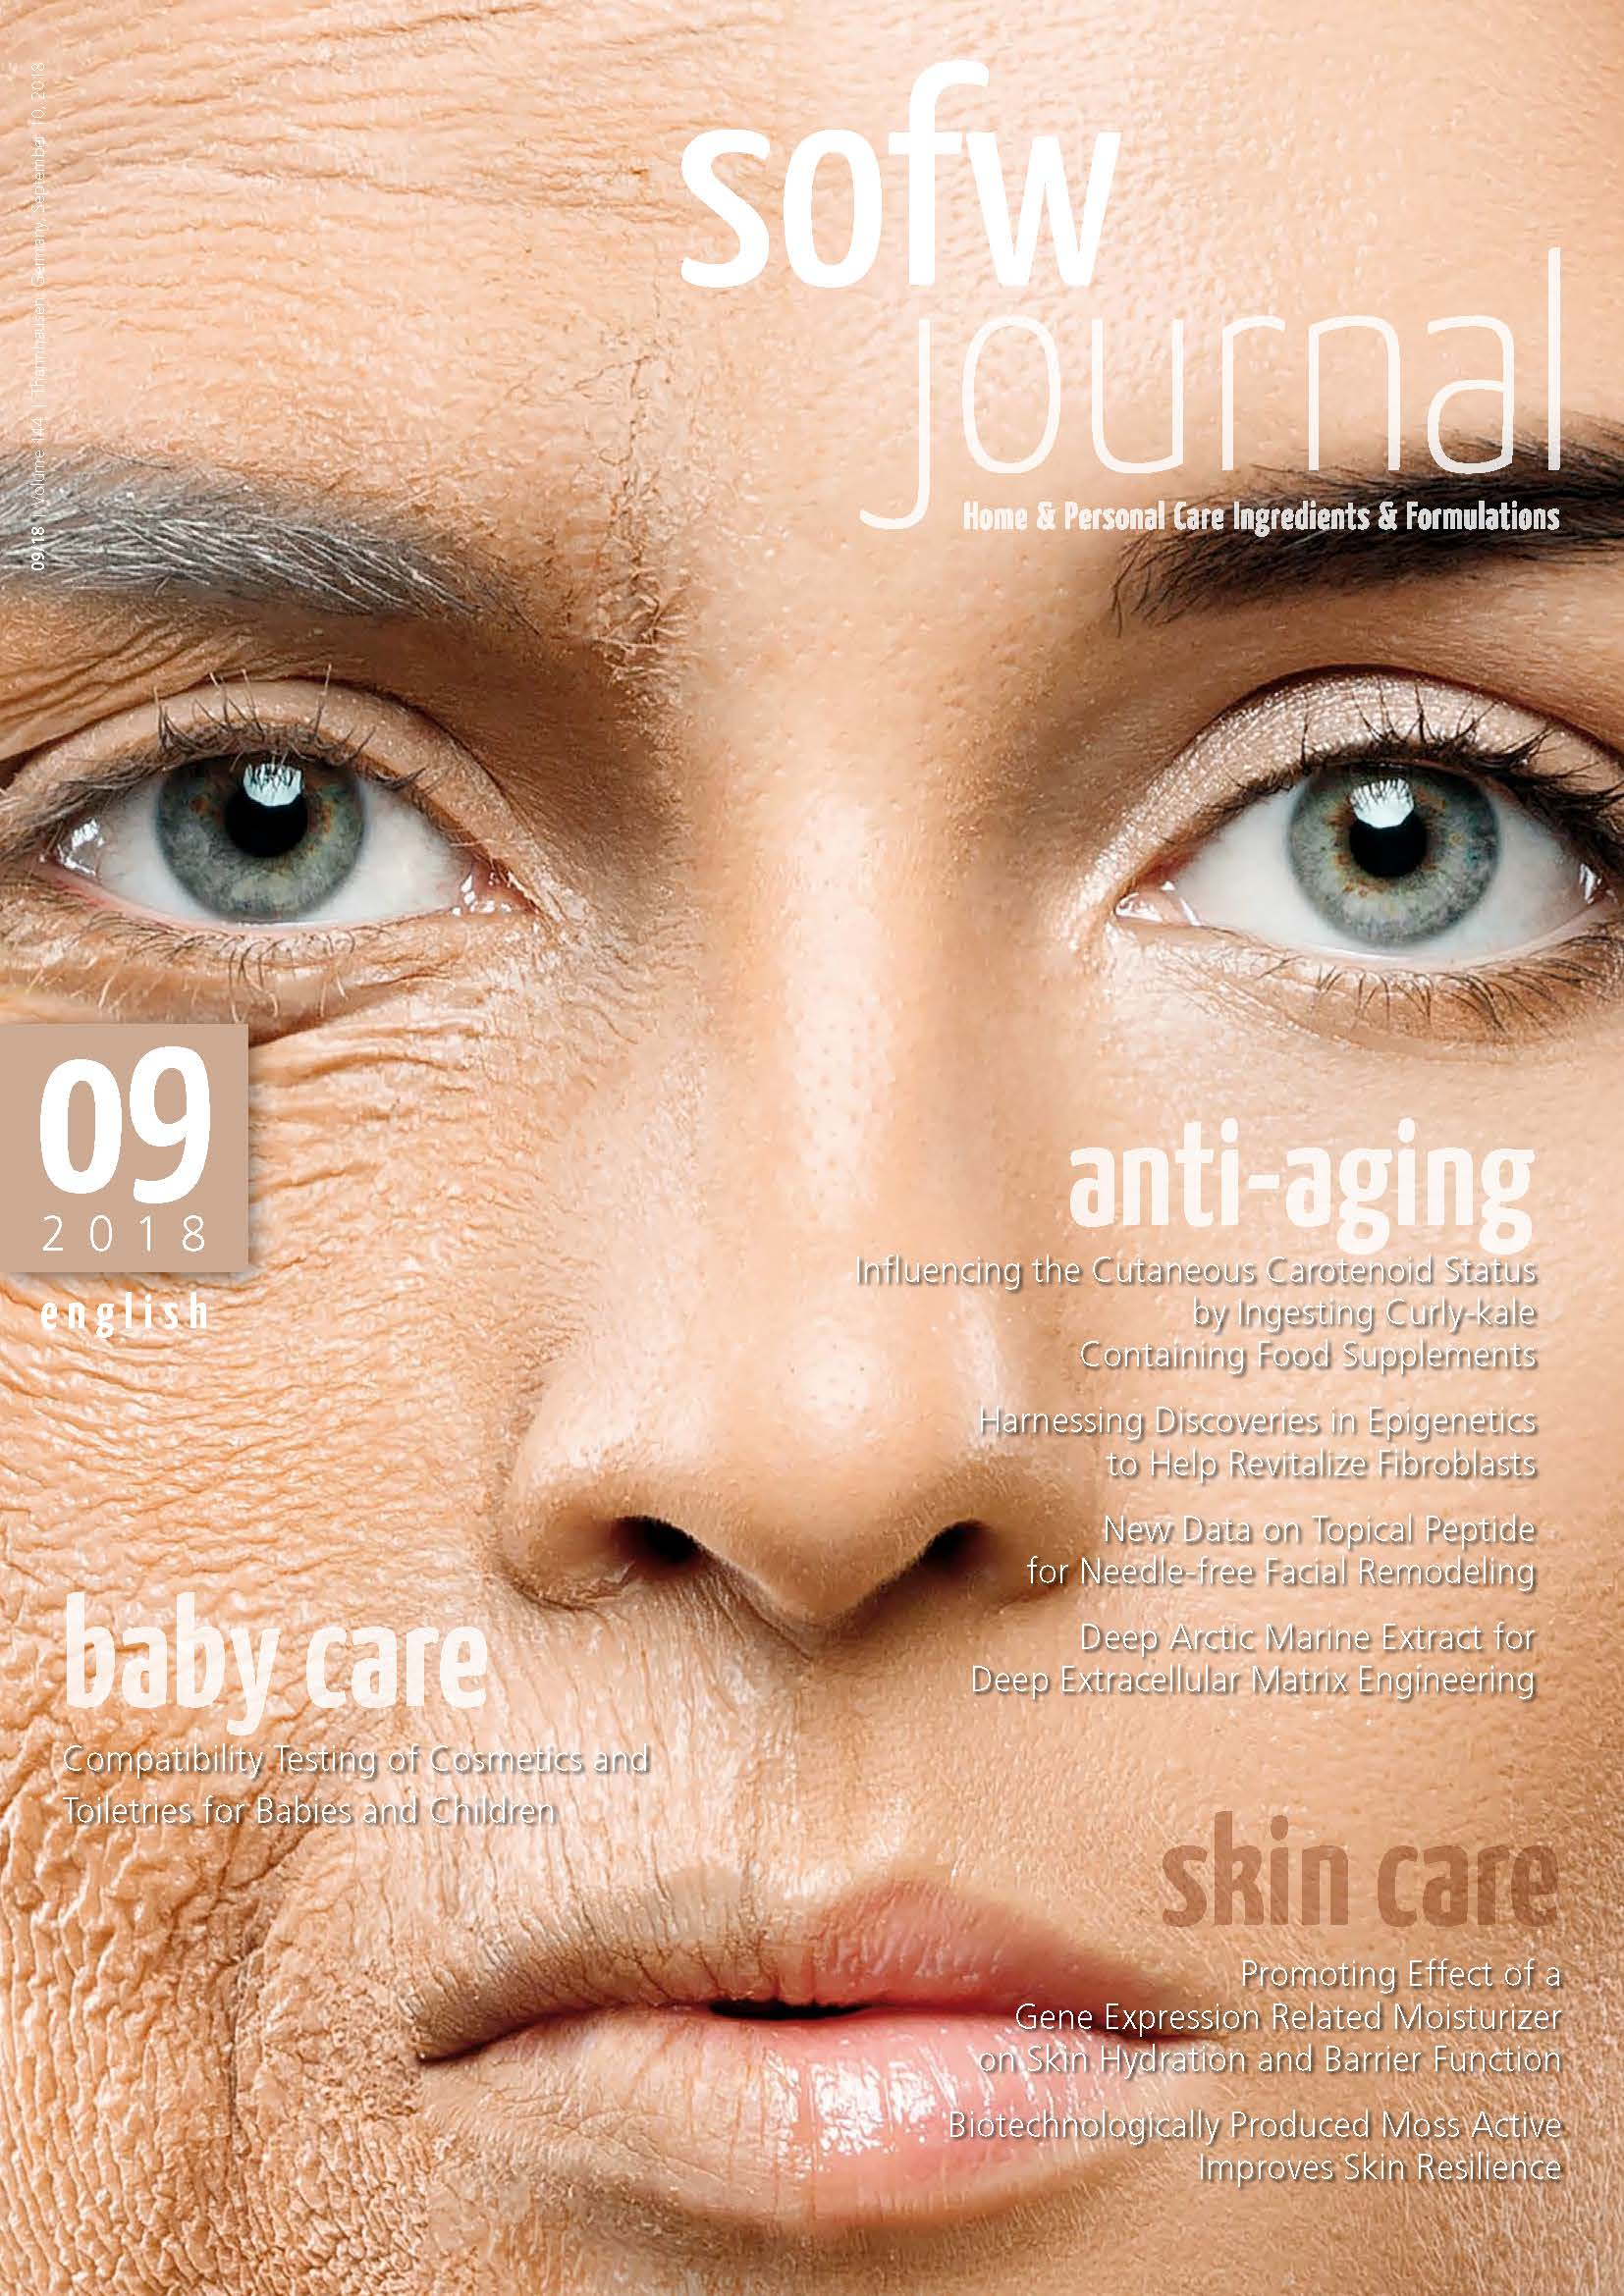 sofwjournal_en_2018_09_cover